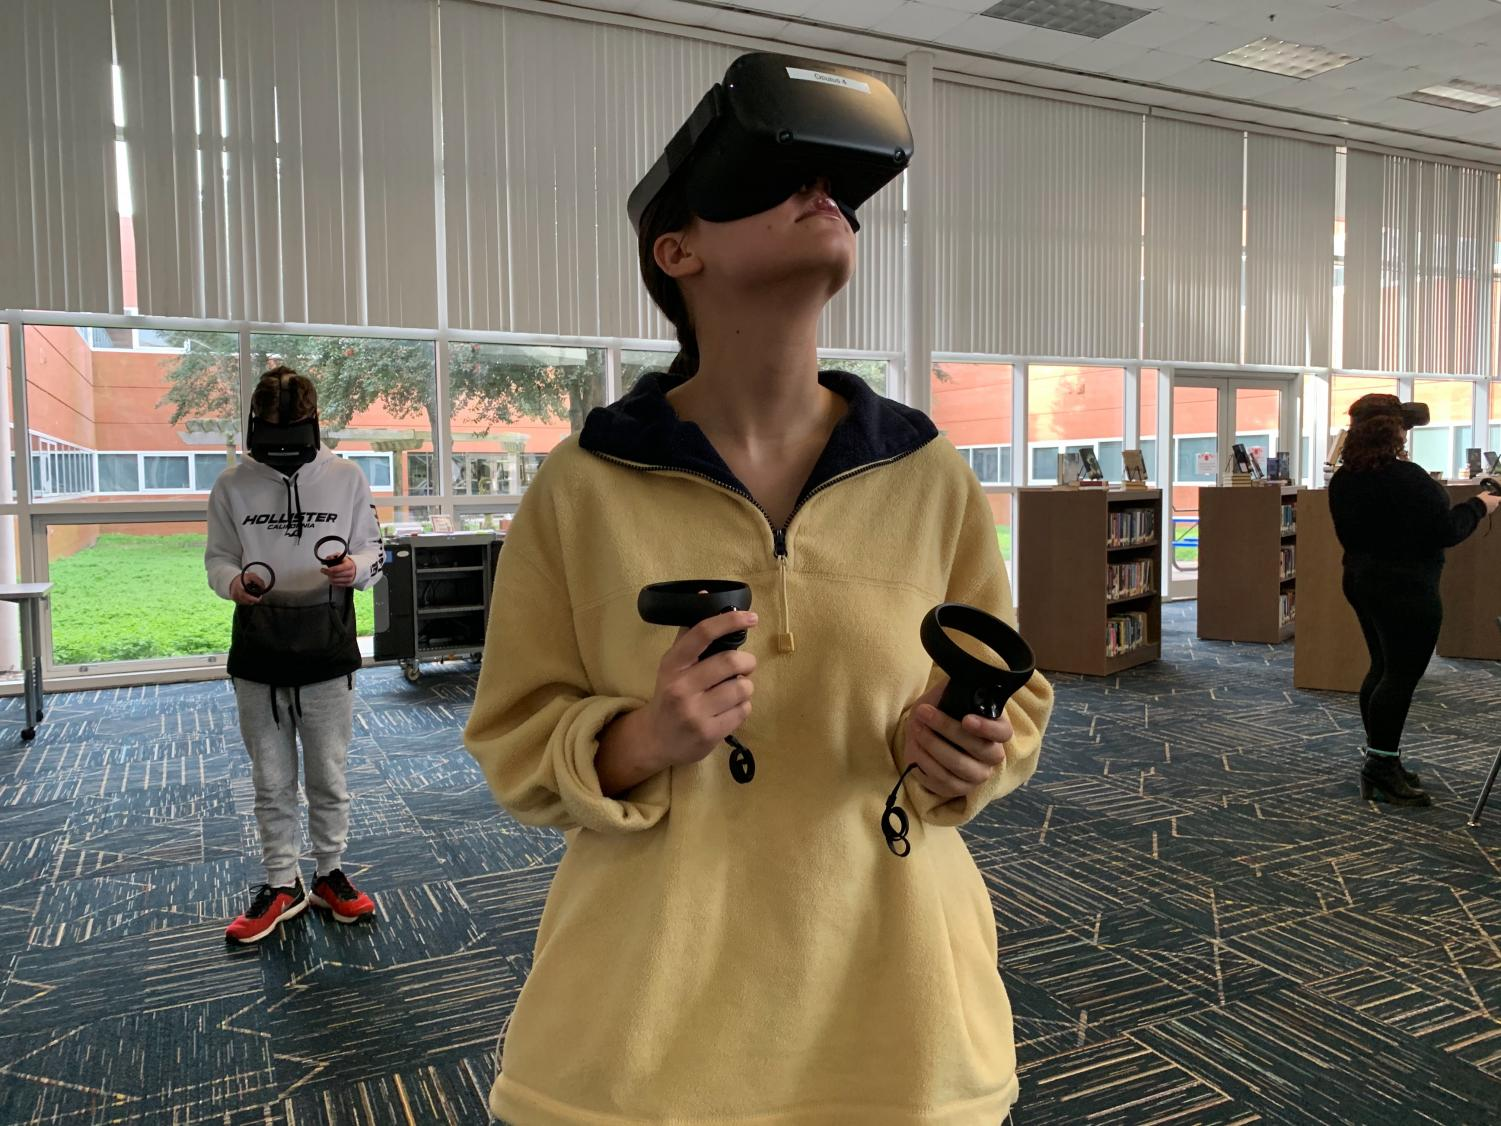 Senior Nascia Phillips explores the augmented reality app in the library on Jan. 23.